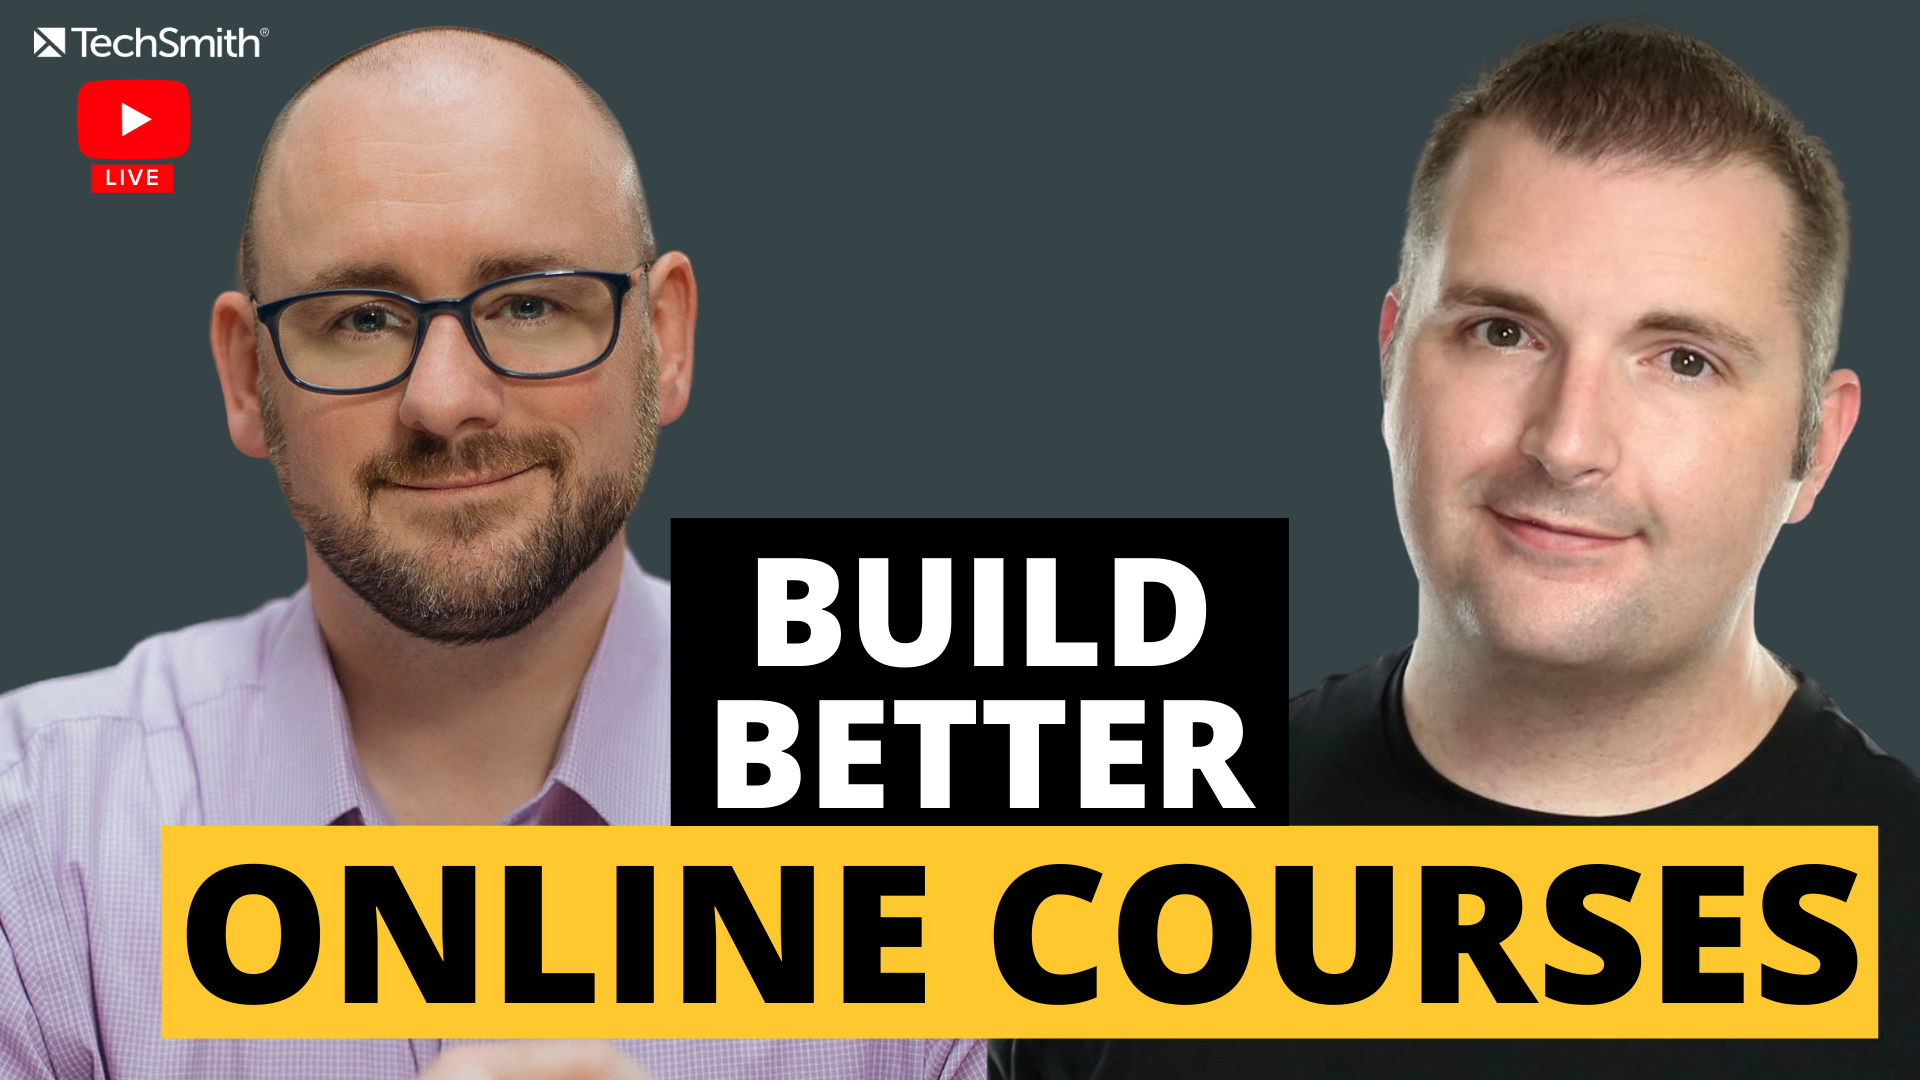 Build Better Online Courses